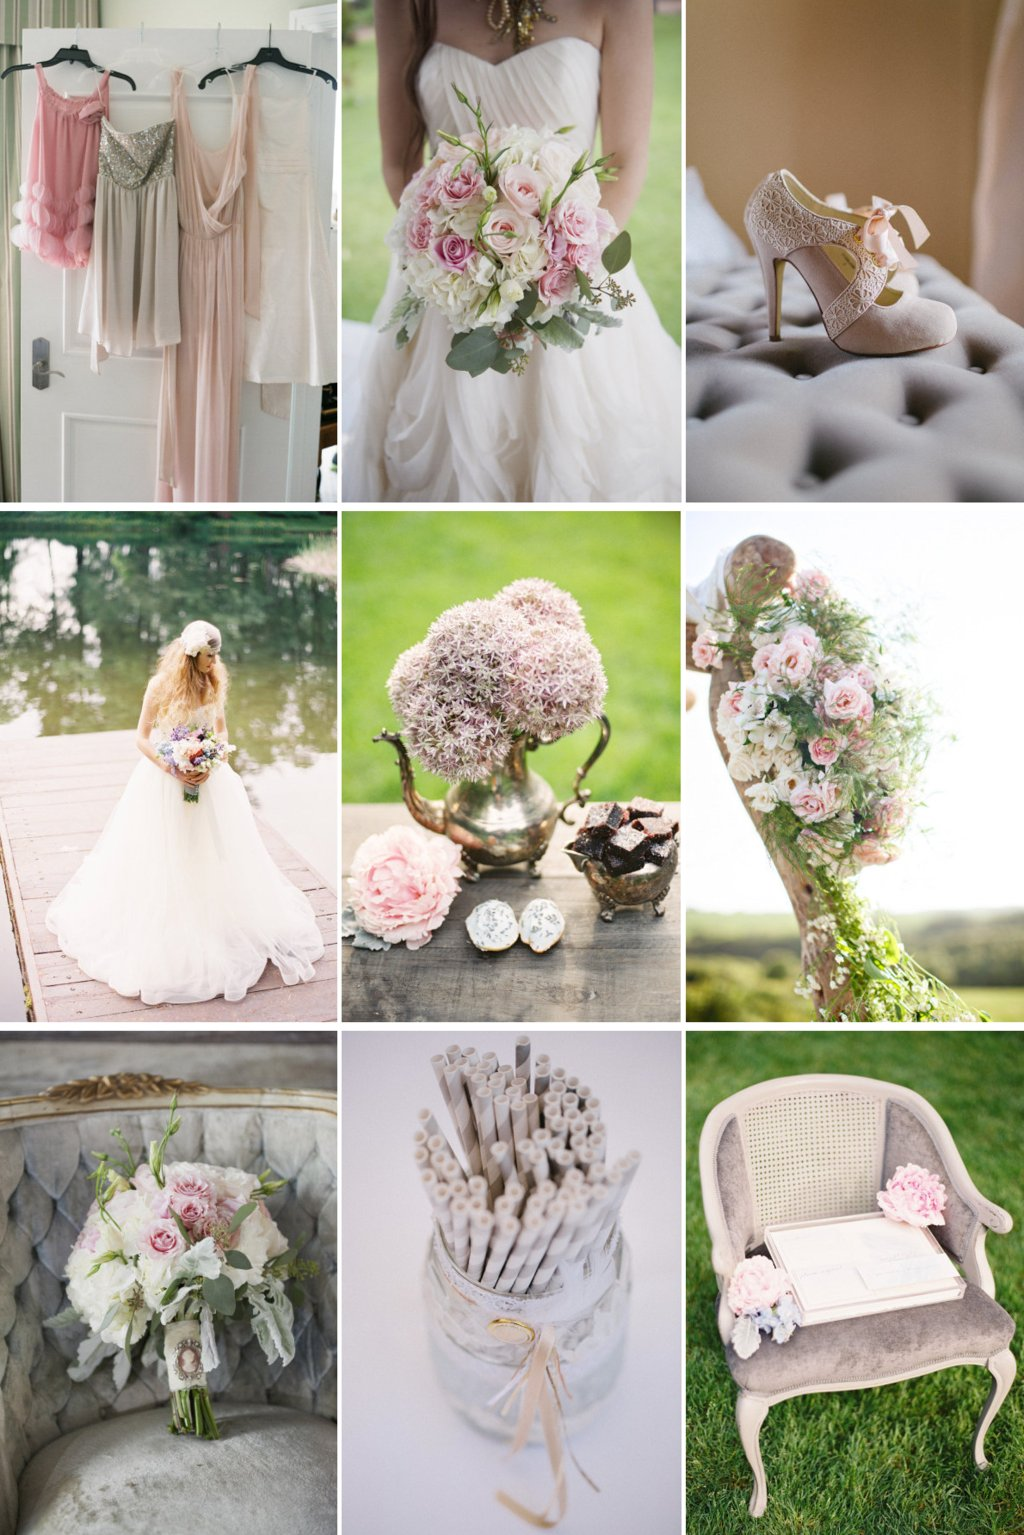 Romantic-wedding-color-palette-rosy-brown-sage-dove-gray-3.full